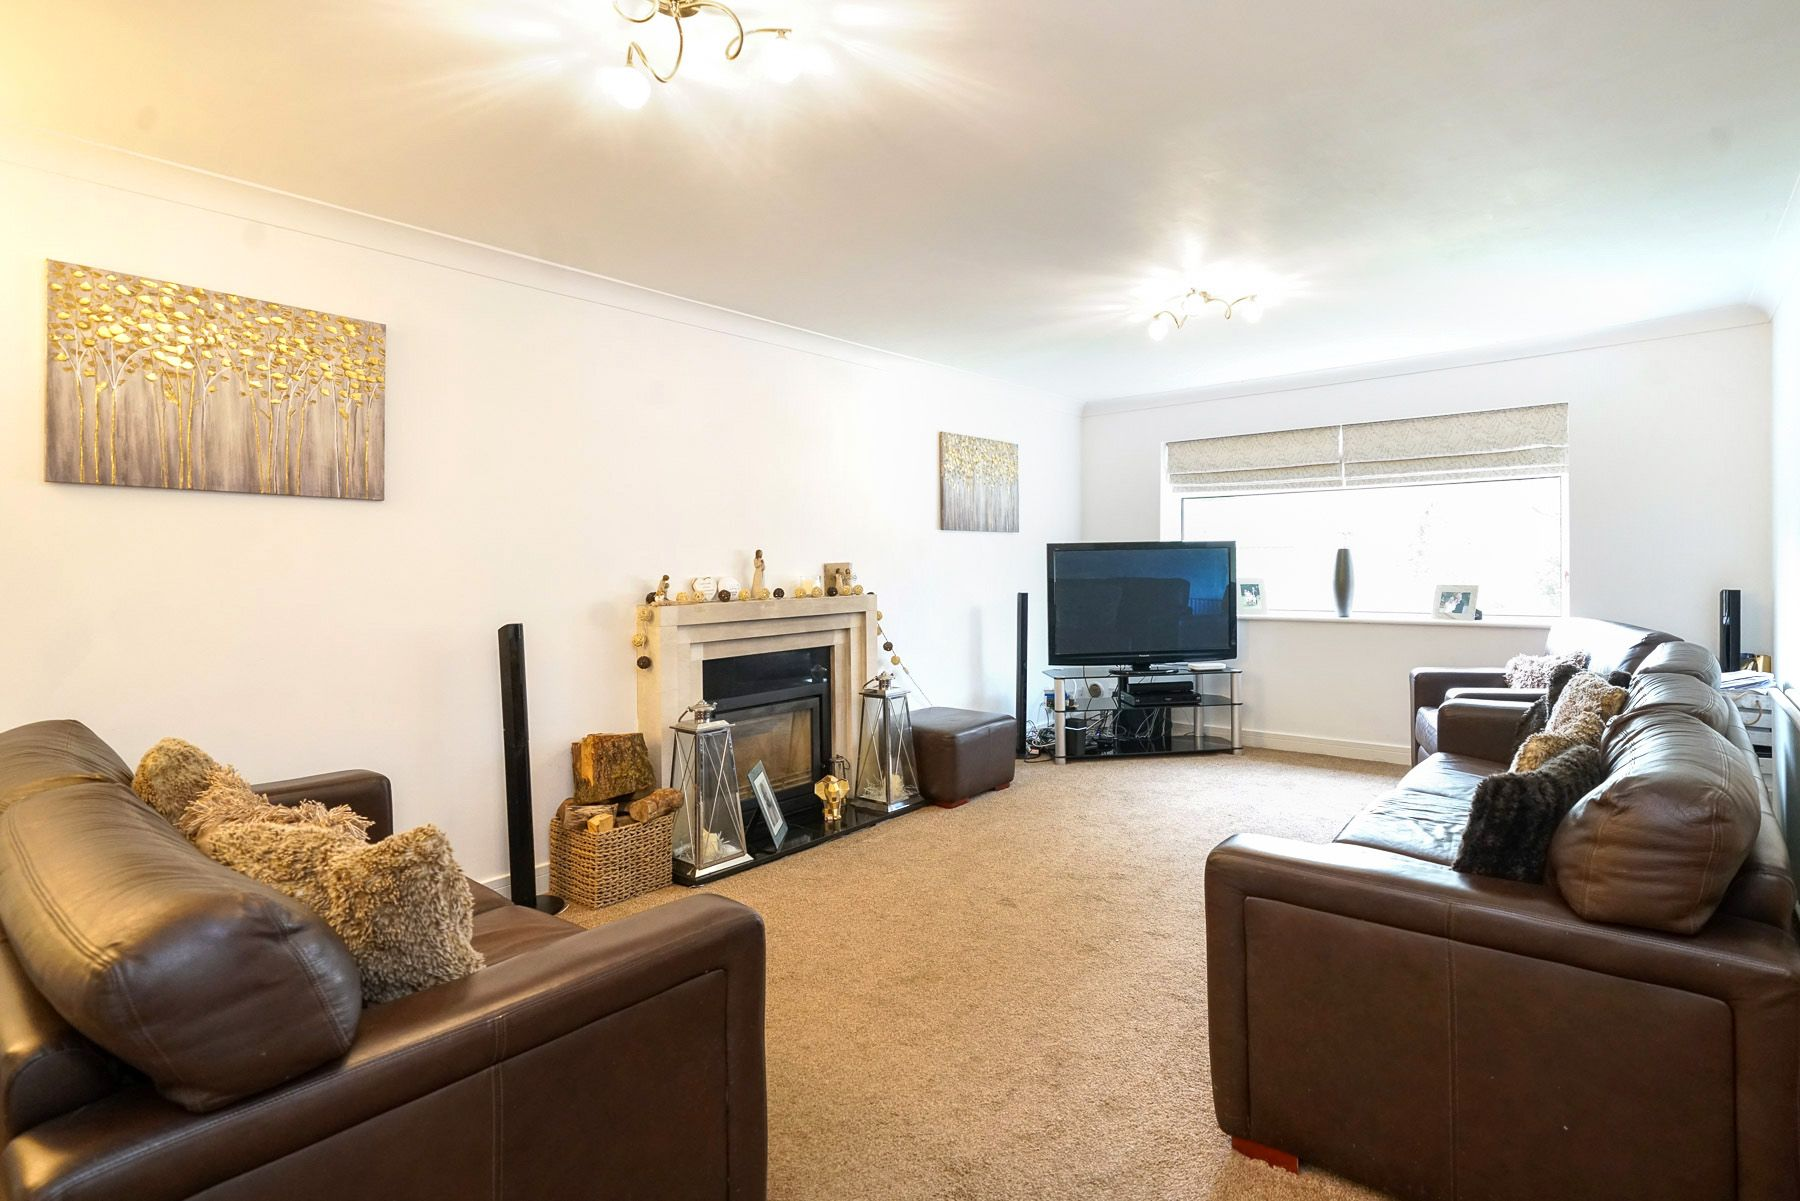 4 bedroom detached house SSTC in Bolton - Photograph 6